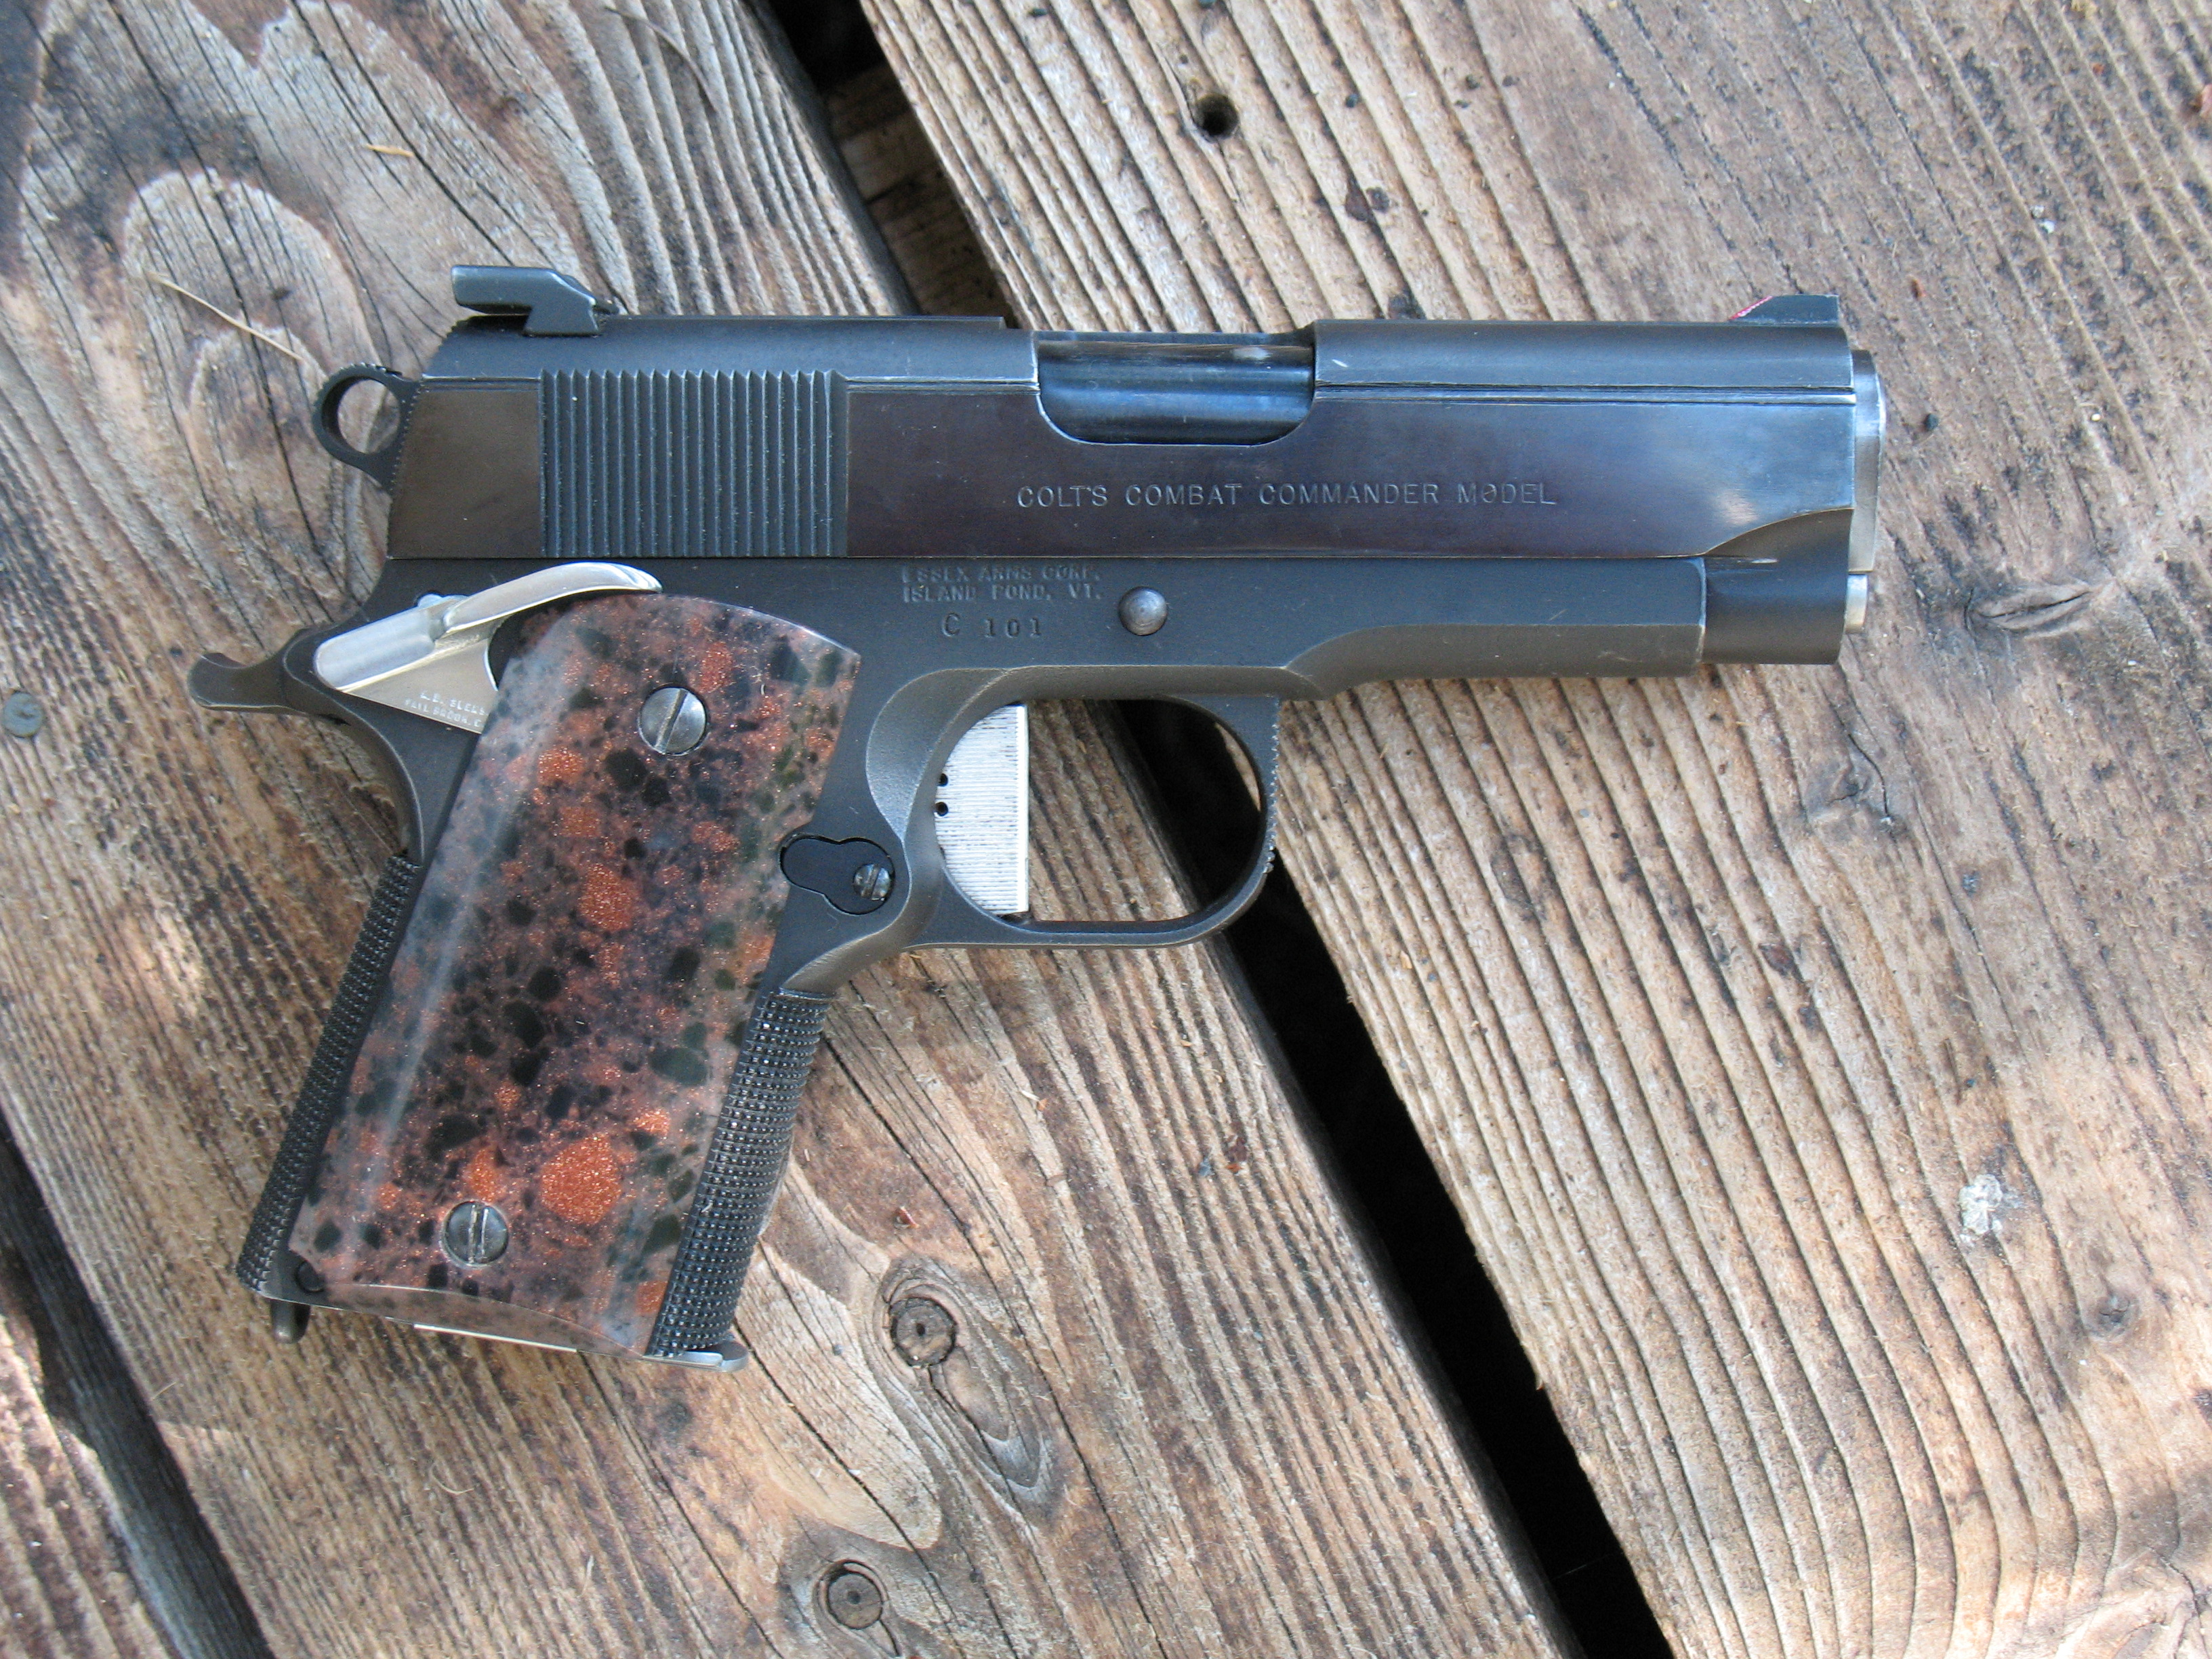 Share some Colt love - a picture thread-img_2024.jpg